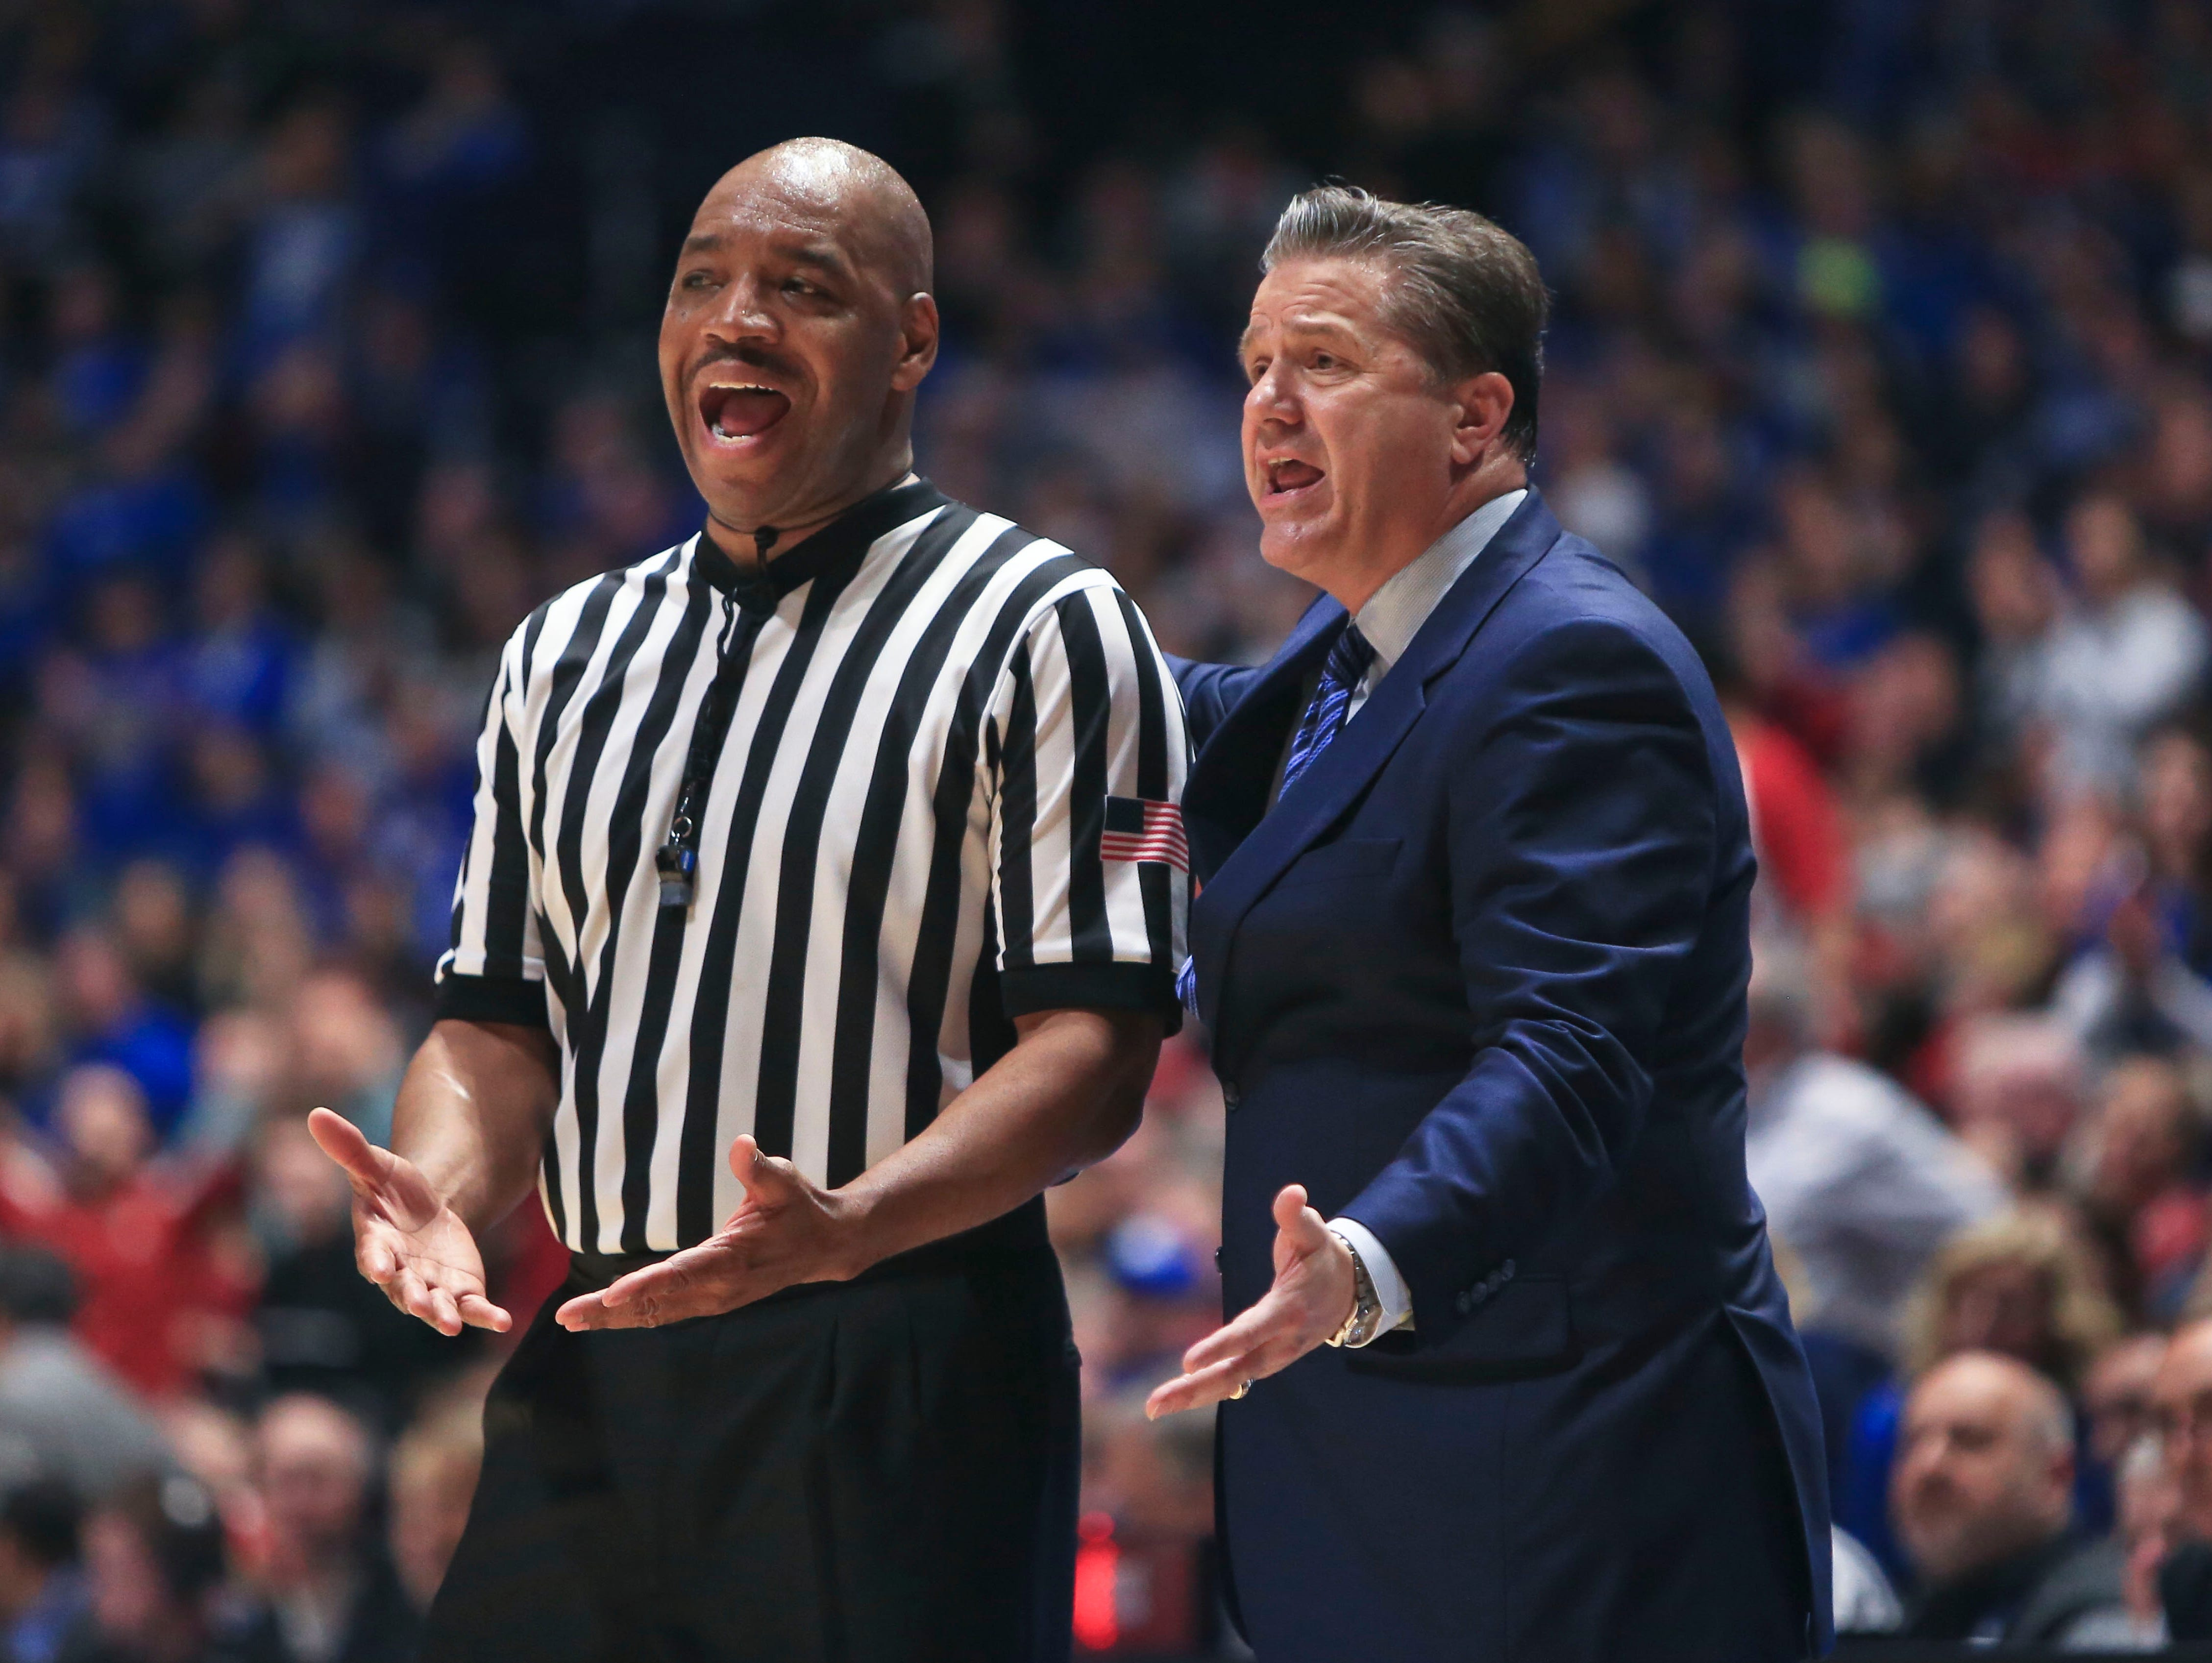 """Kentucky's John Calipari gives an official an earful in the second half against Alabama. """"The team is starting to come together and understand, you know, numbers don't matter on a team like this,"""" Calipari said afterwards to the media."""